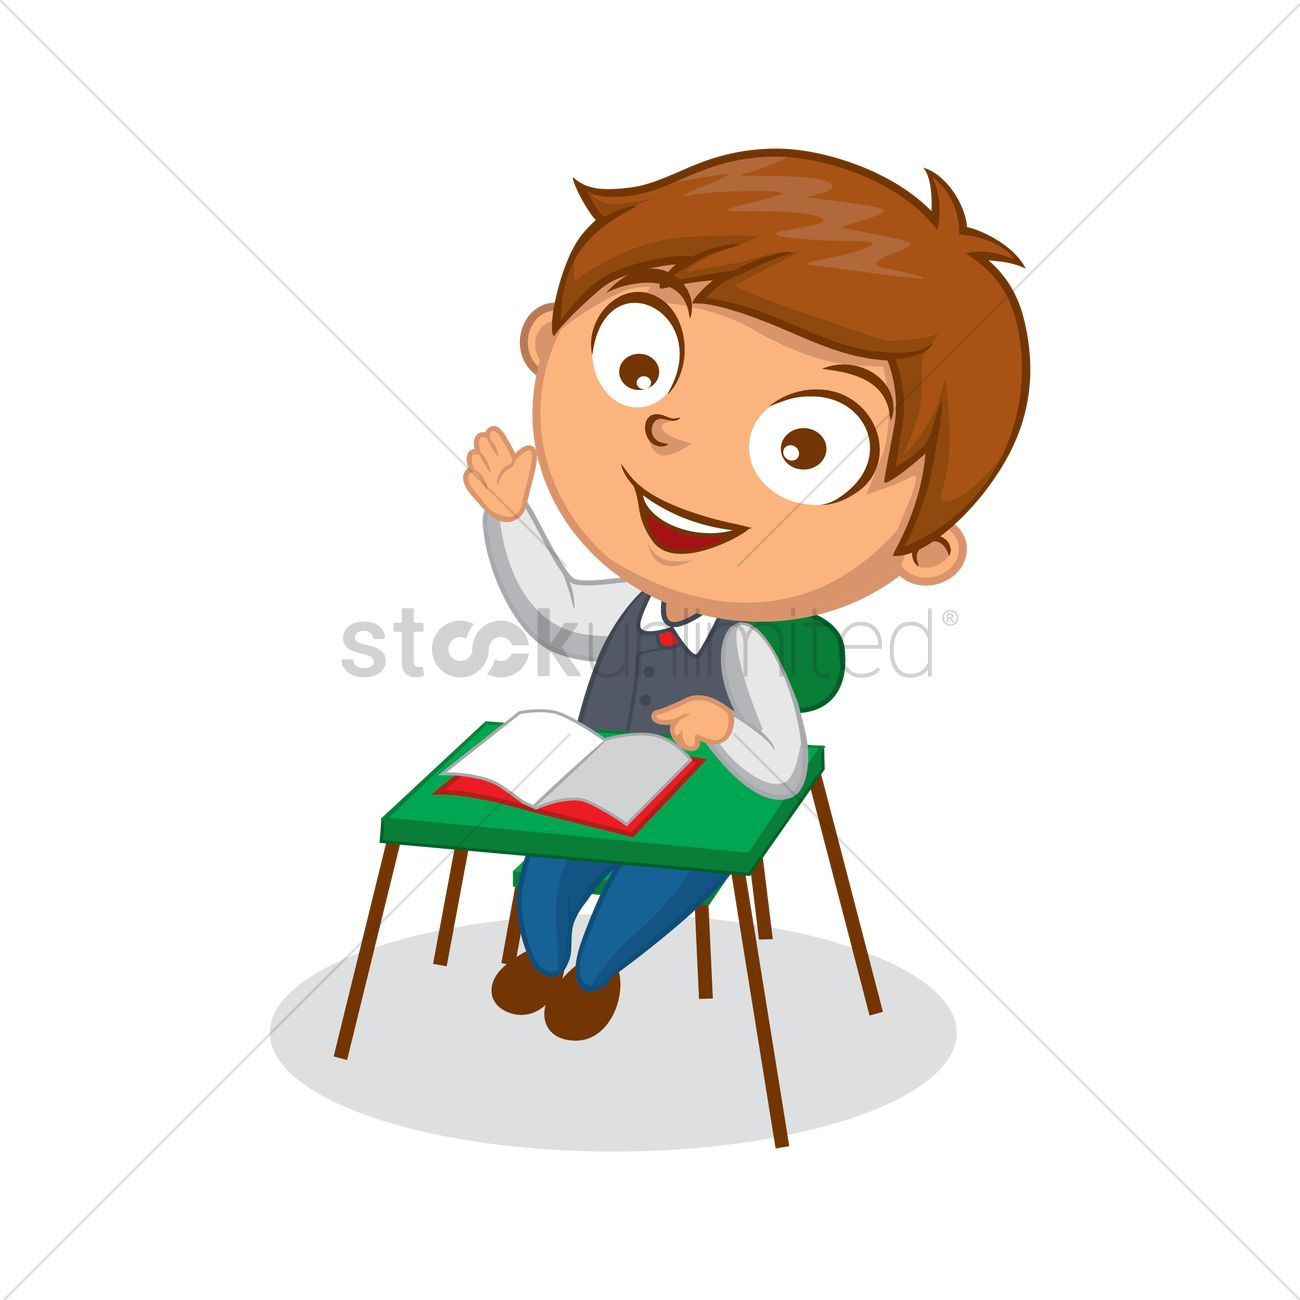 Reading books in rocking chair for kids clipart clip black and white Free School boy reading book Vector Image - 1570308 ... clip black and white